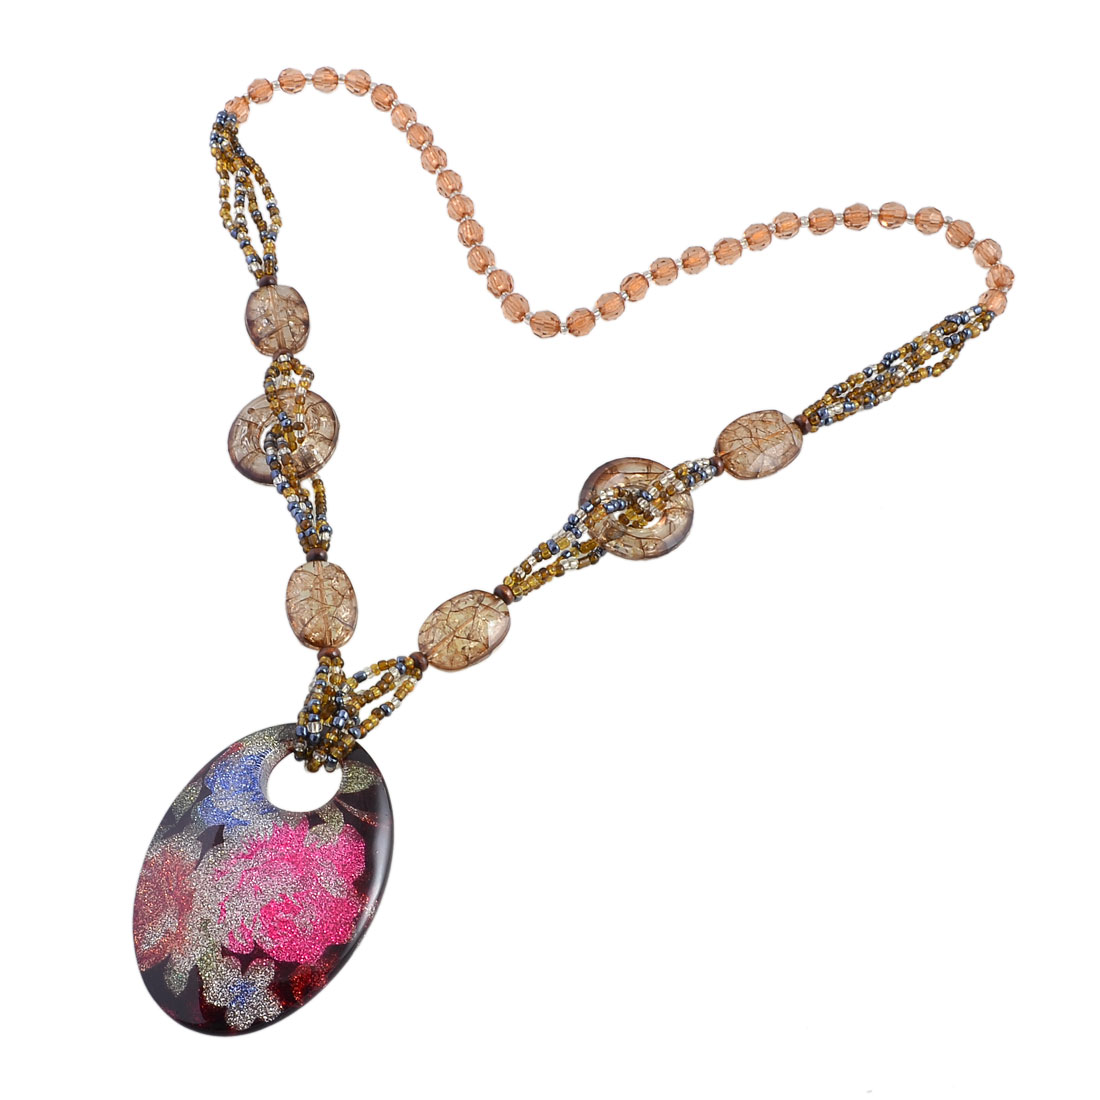 Faceted Beads Colorful Glittery Powder Oval Pendant Sweater Necklace for Lady